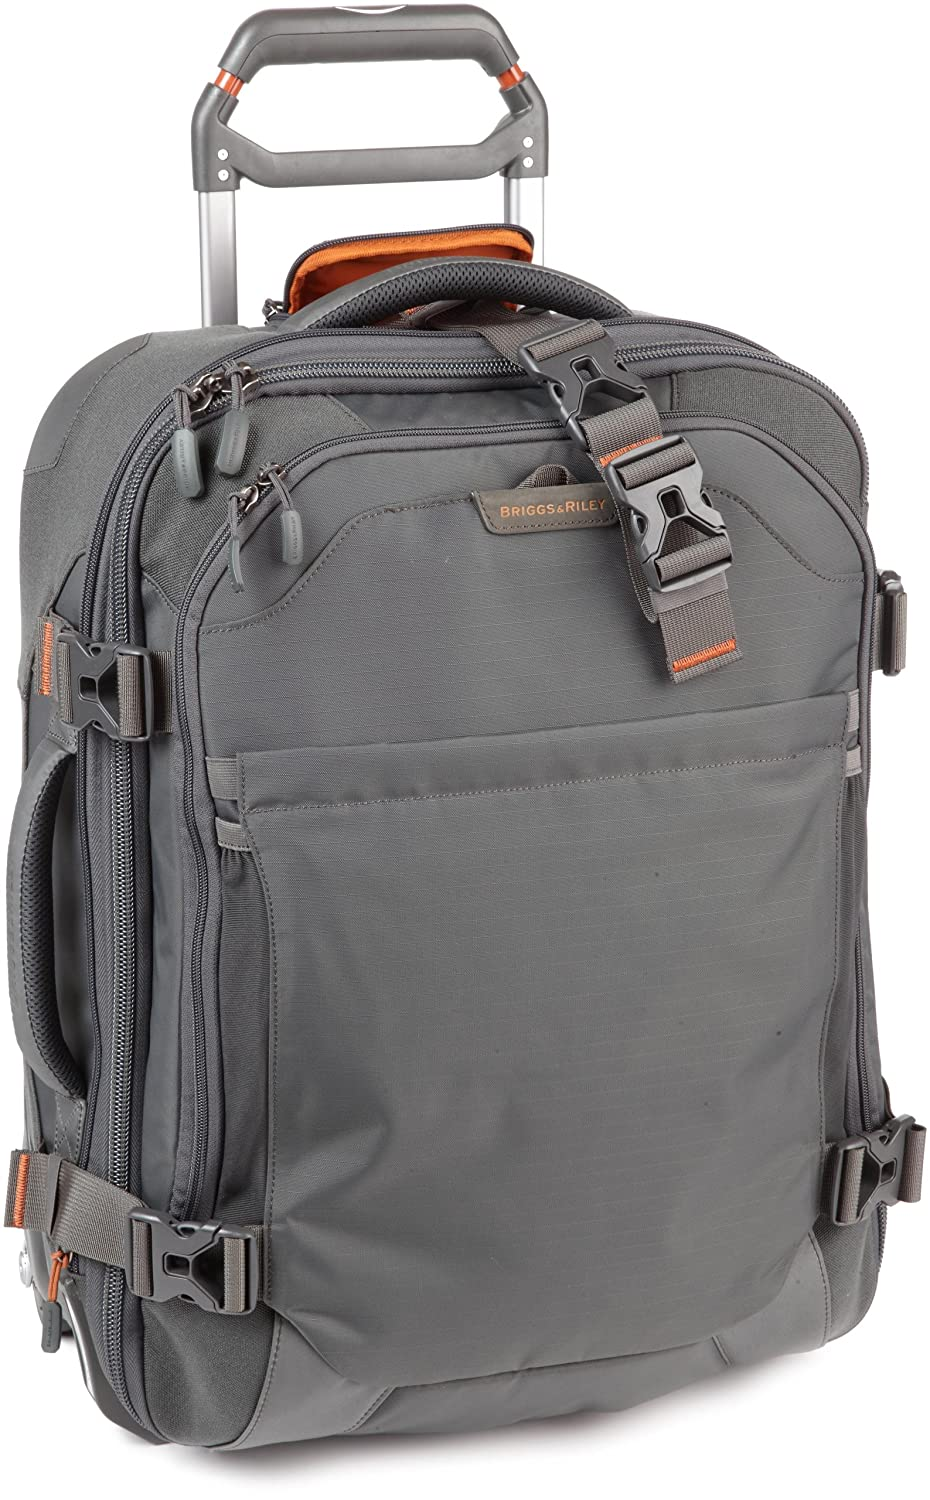 outlet Briggs & Riley BRX  Brx Explore 20 Wide-Body Upright,Slate,20x15.5x8.5 inch